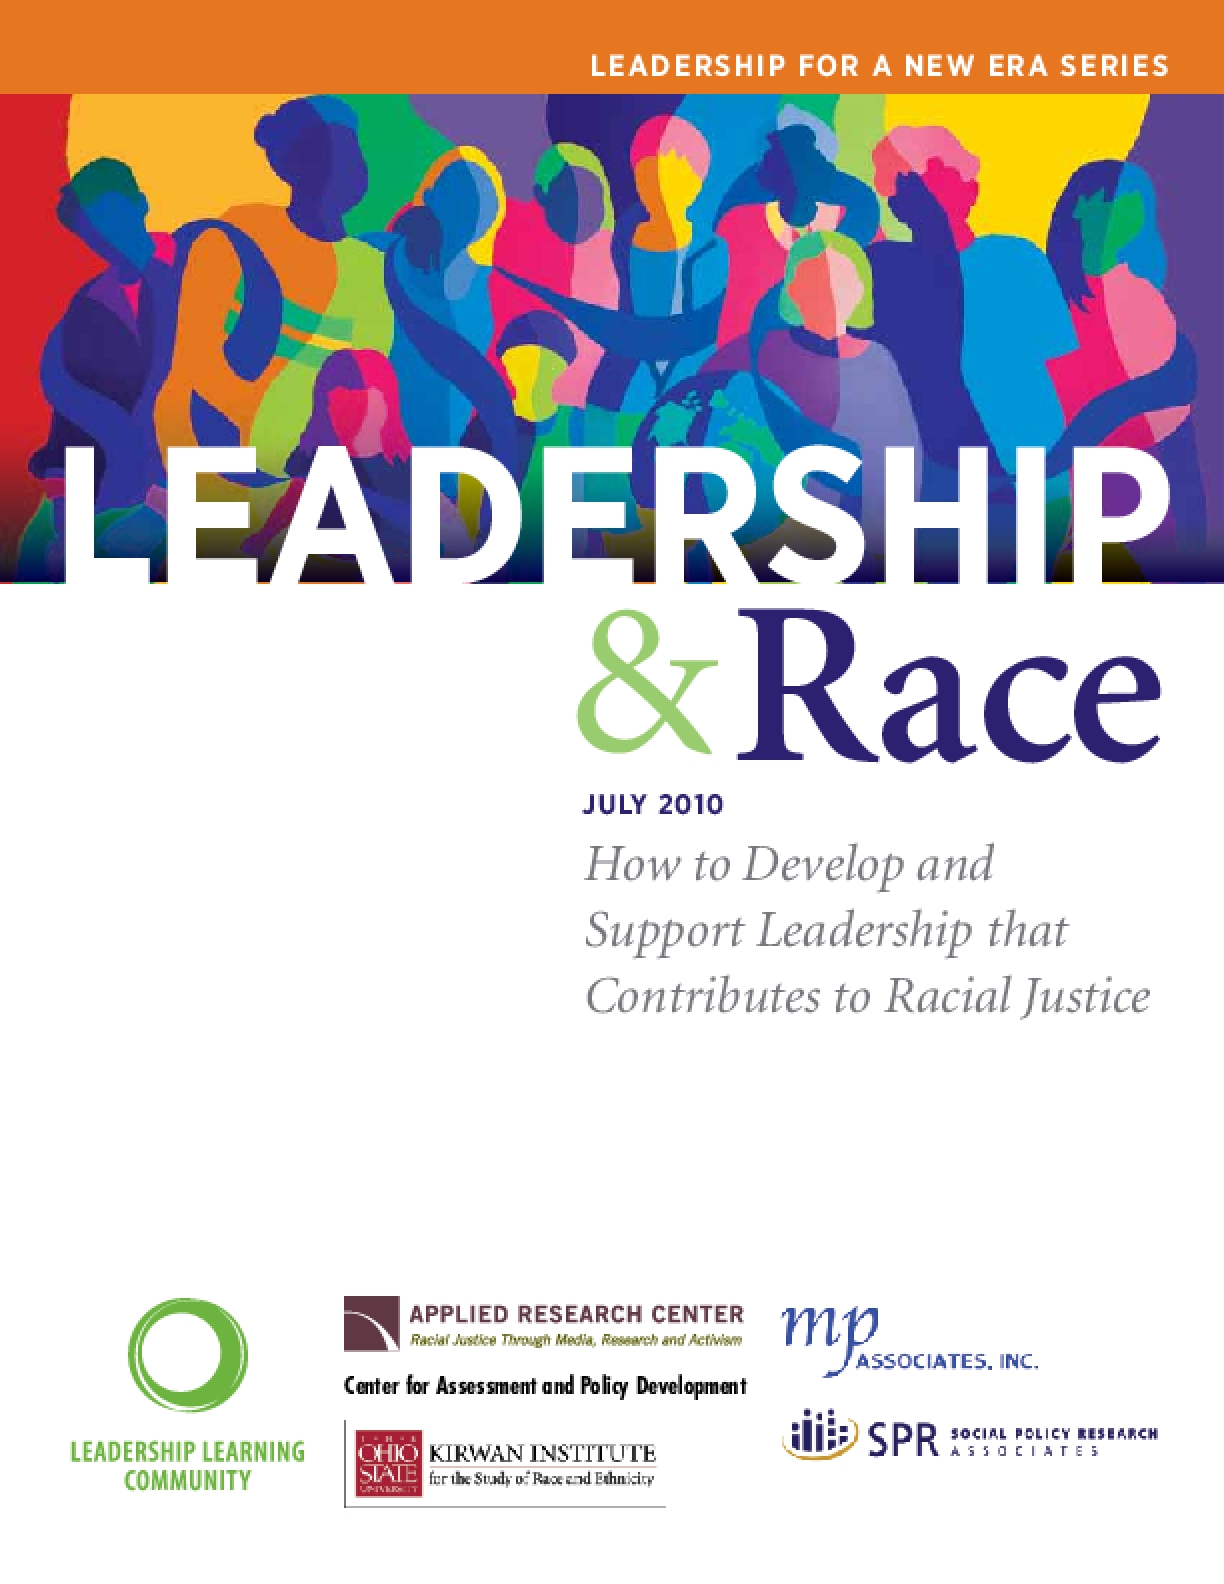 Leadership and Race: How to Develop and Support Leadership that Contributes to Racial Justice